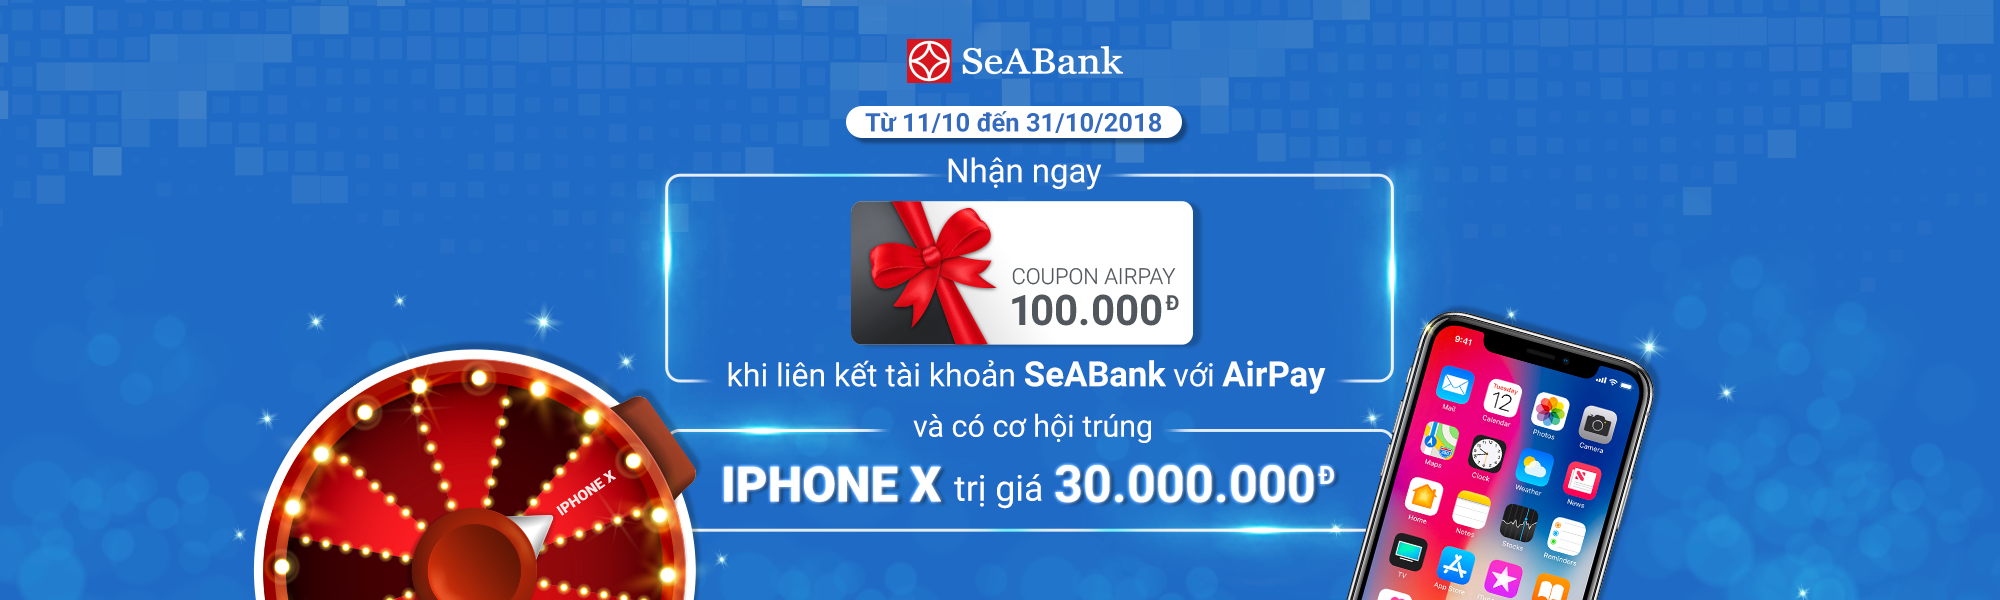 lien-ket-seabank-co-ngay-coupon-100k-va-co-hoi-trung-iphone-x